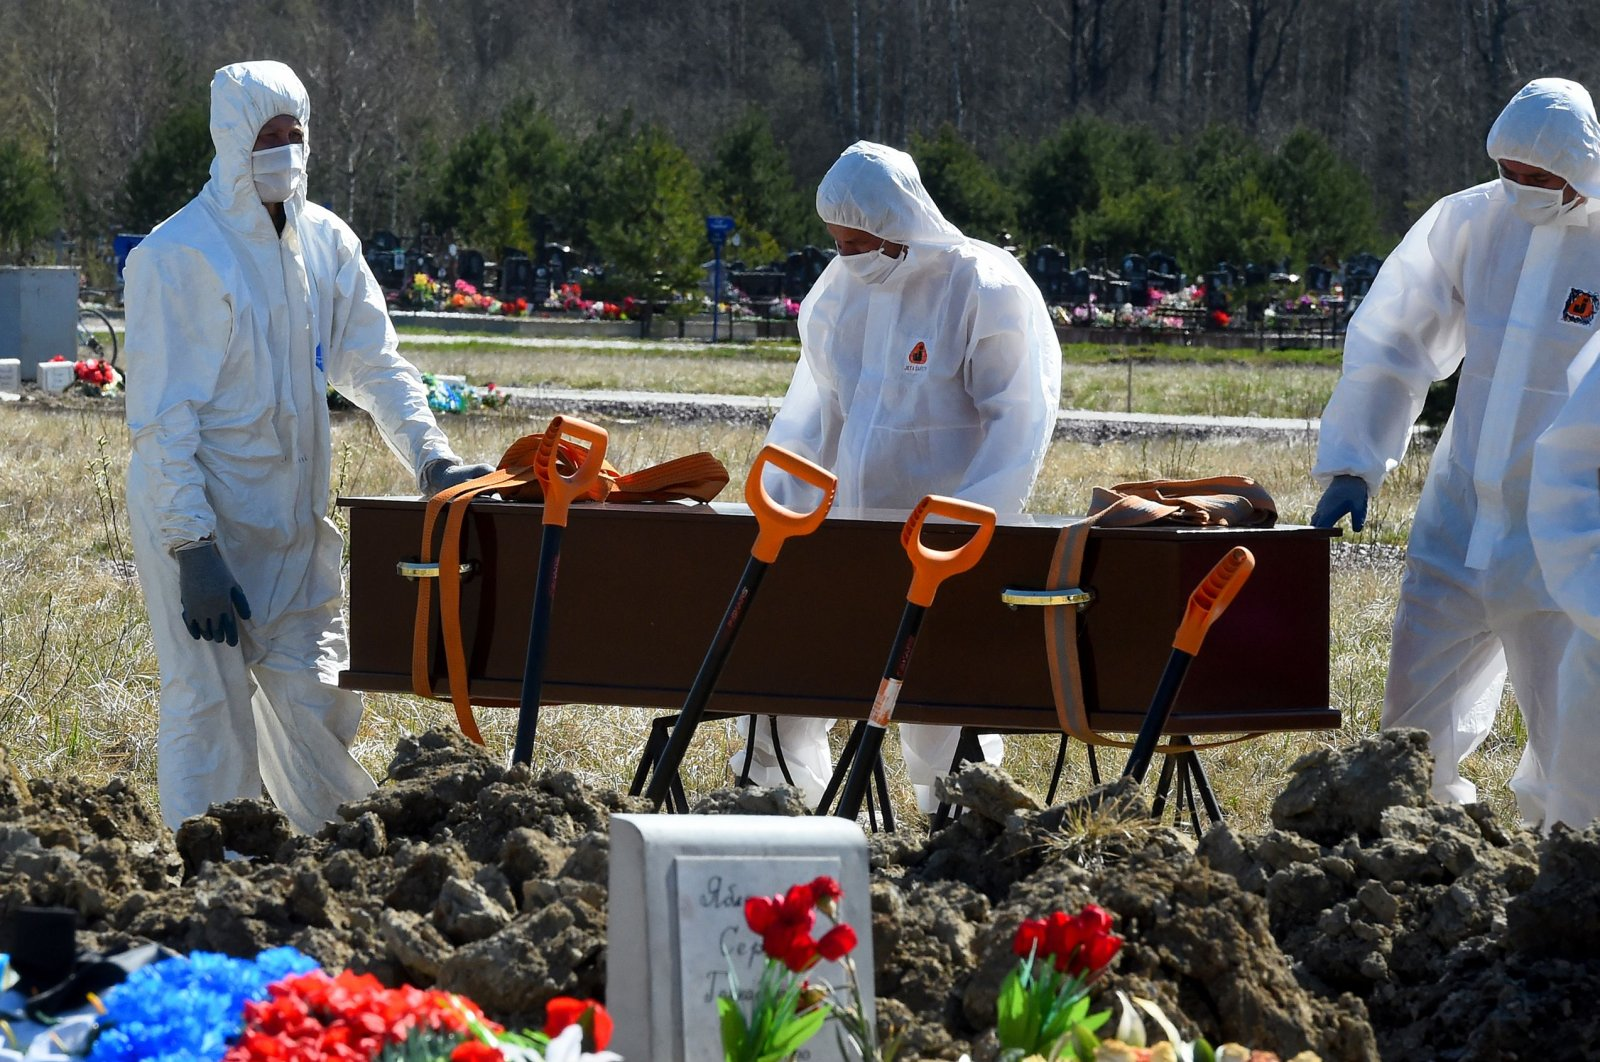 Cemetery workers wearing protective gear bury a coronavirus victim at a cemetery on the outskirts of Saint Petersburg, Russia, May 6, 2020. (AFP Photo)